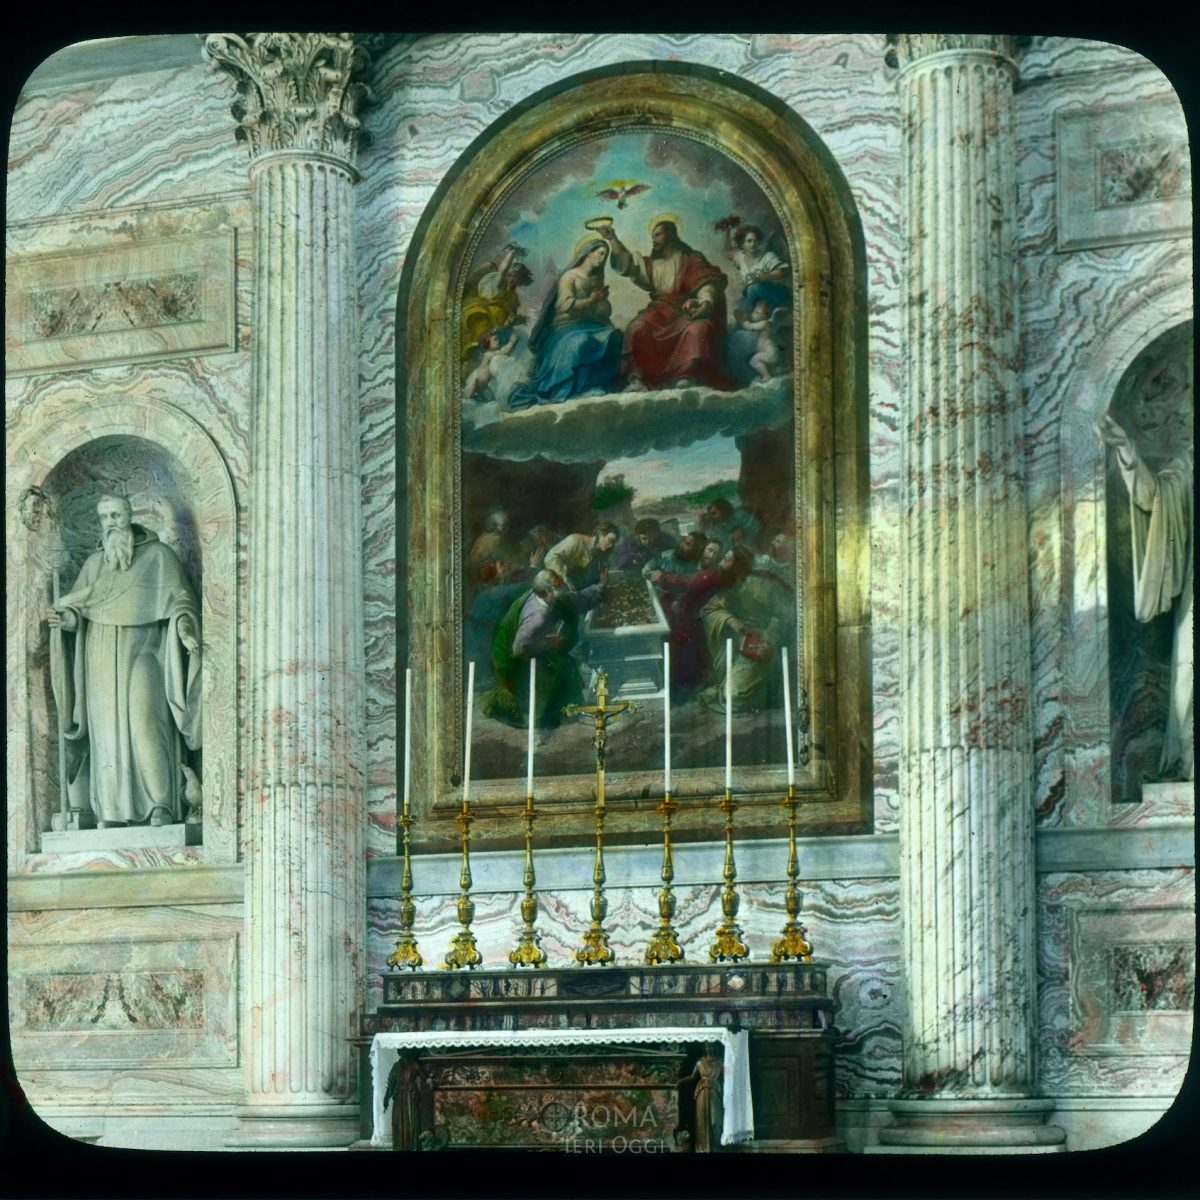 Vatican City. St. Peter's Basilica: interior, altar with mosaic of the Assumption and Coronation View in tinted lantern slide, ca. 1919-1938. The basilica dates from ca. 1506-1626.